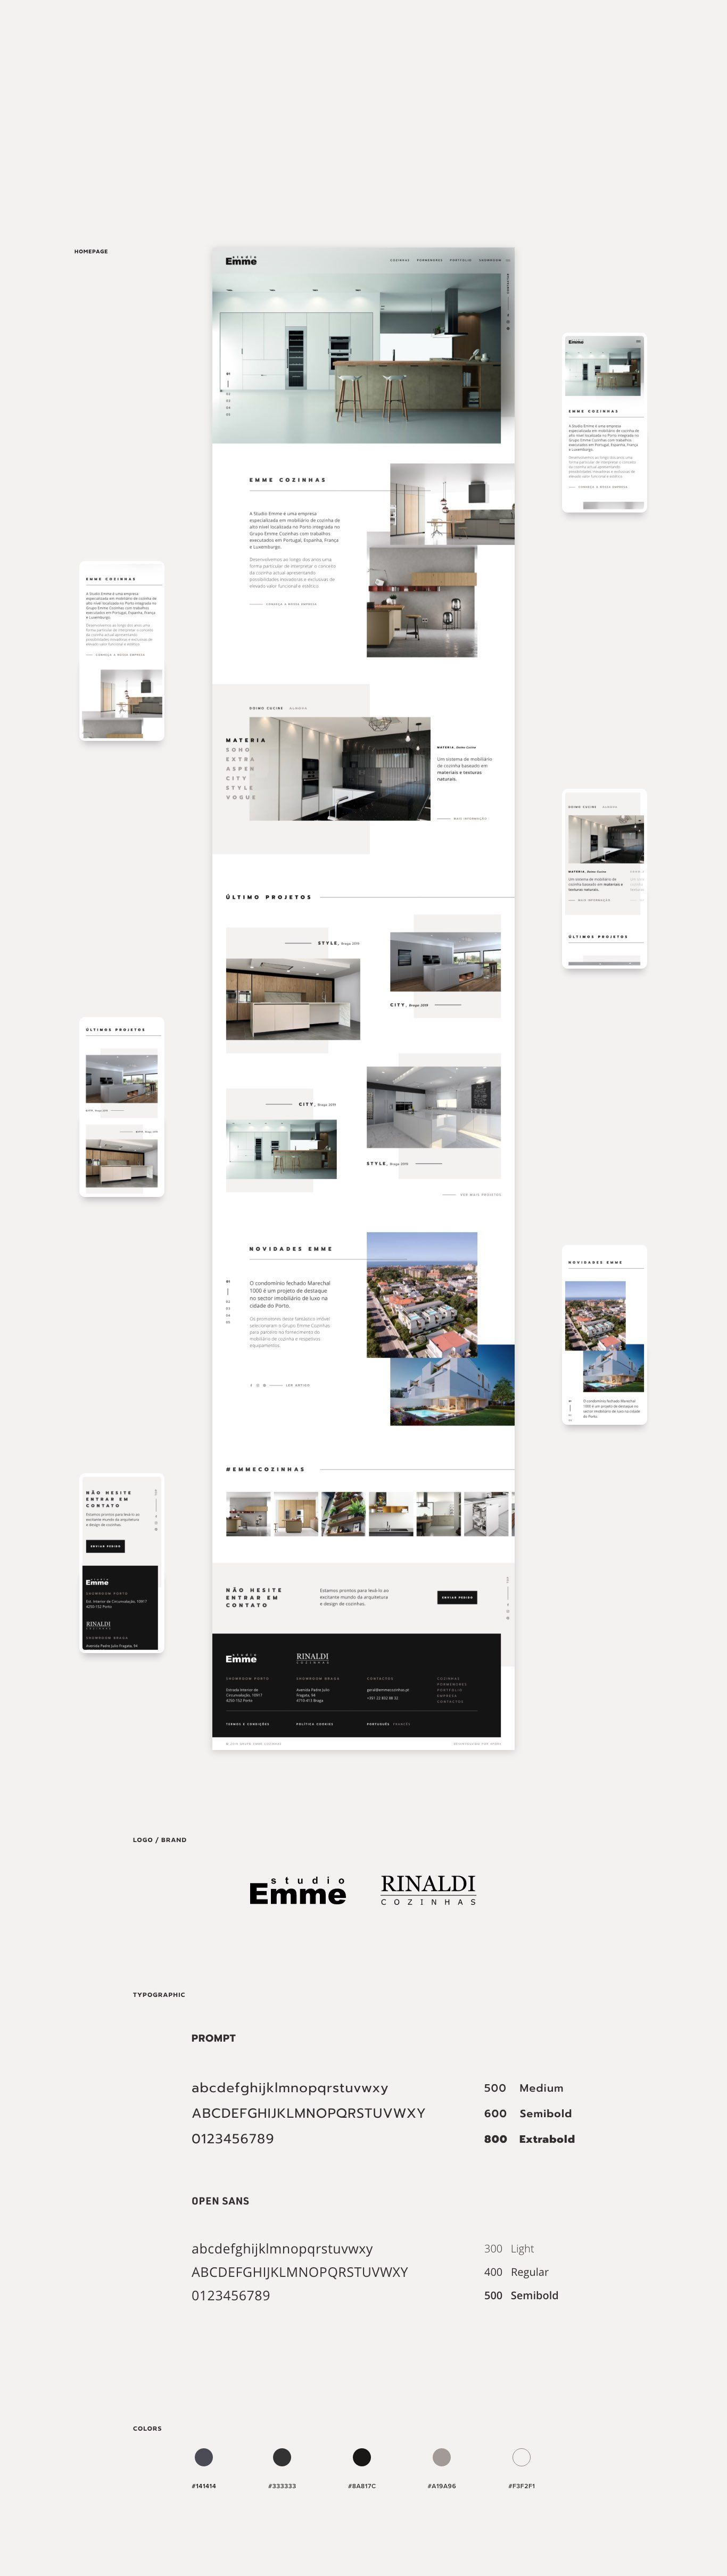 layouts for emme cozinhas website